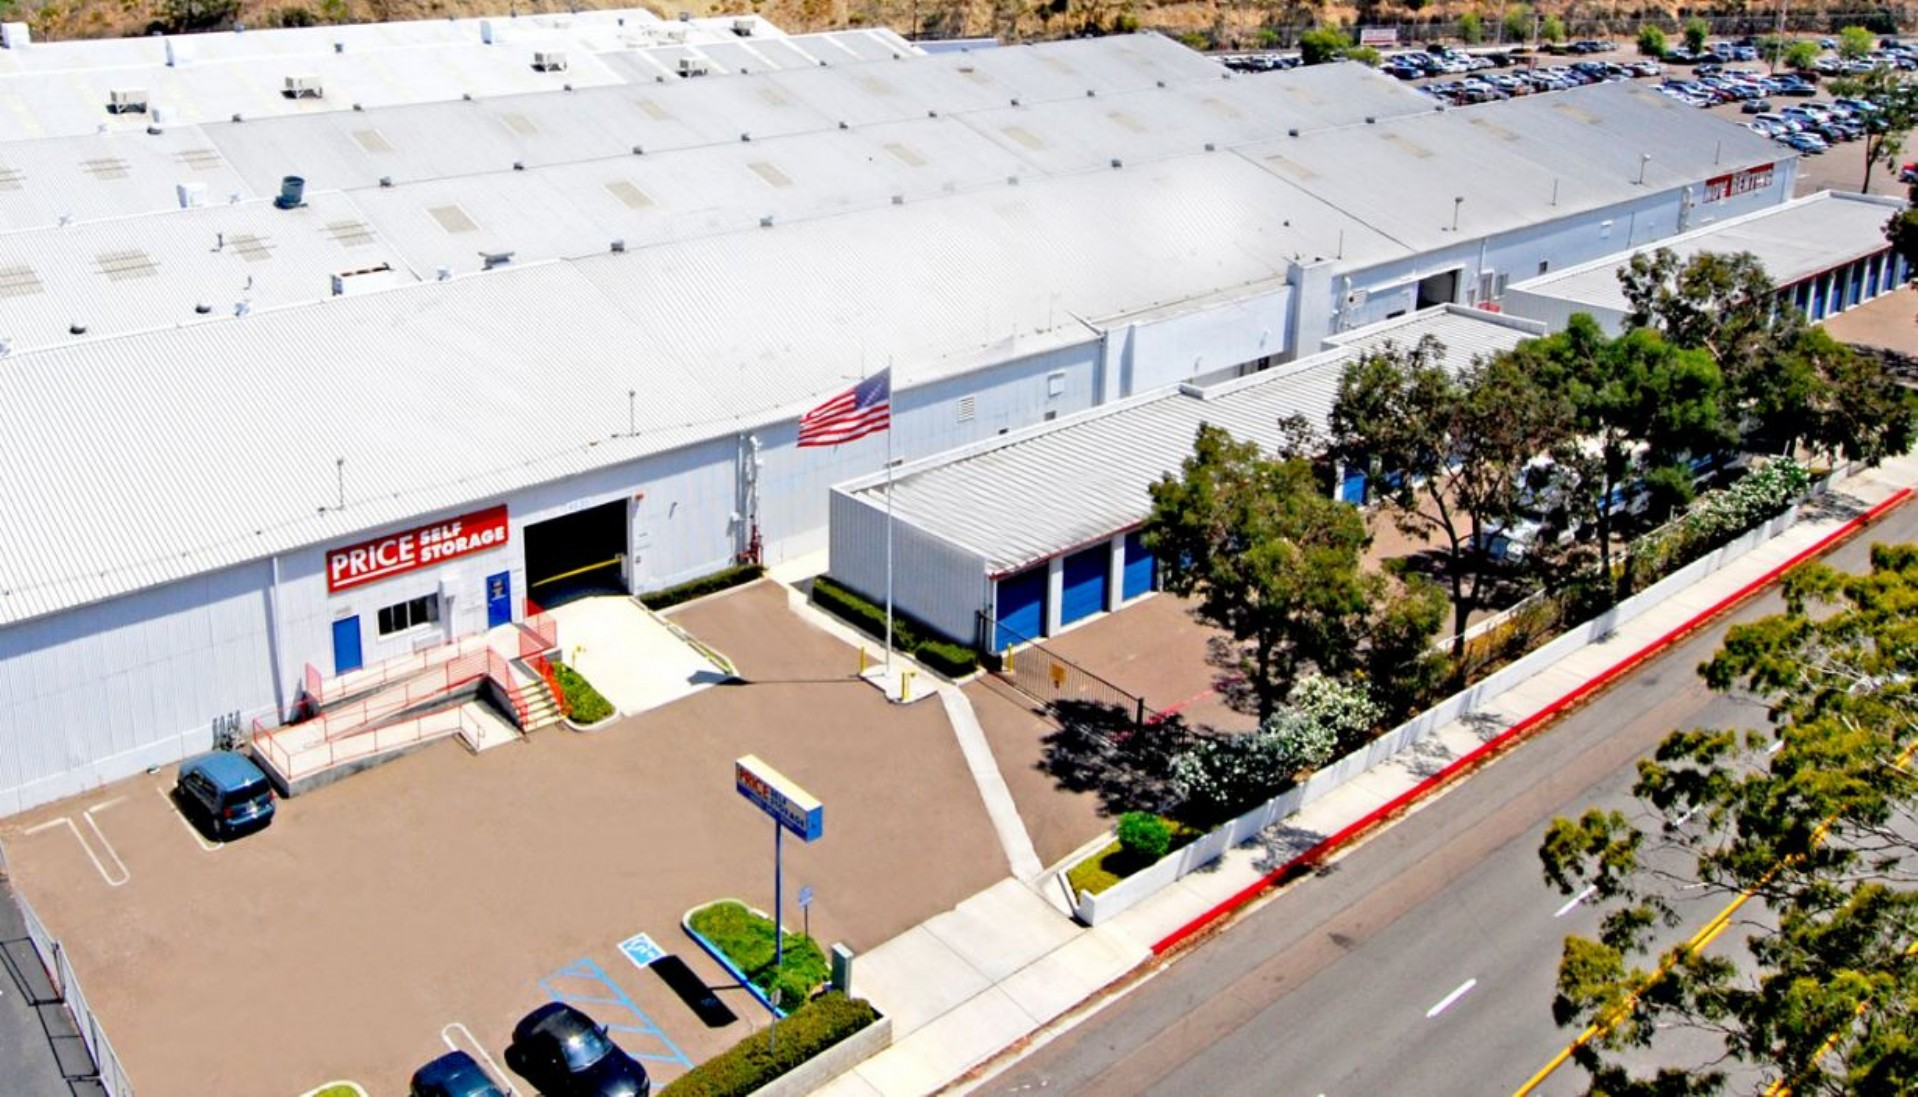 Price Self Storage Morena Blvd facility aerial view